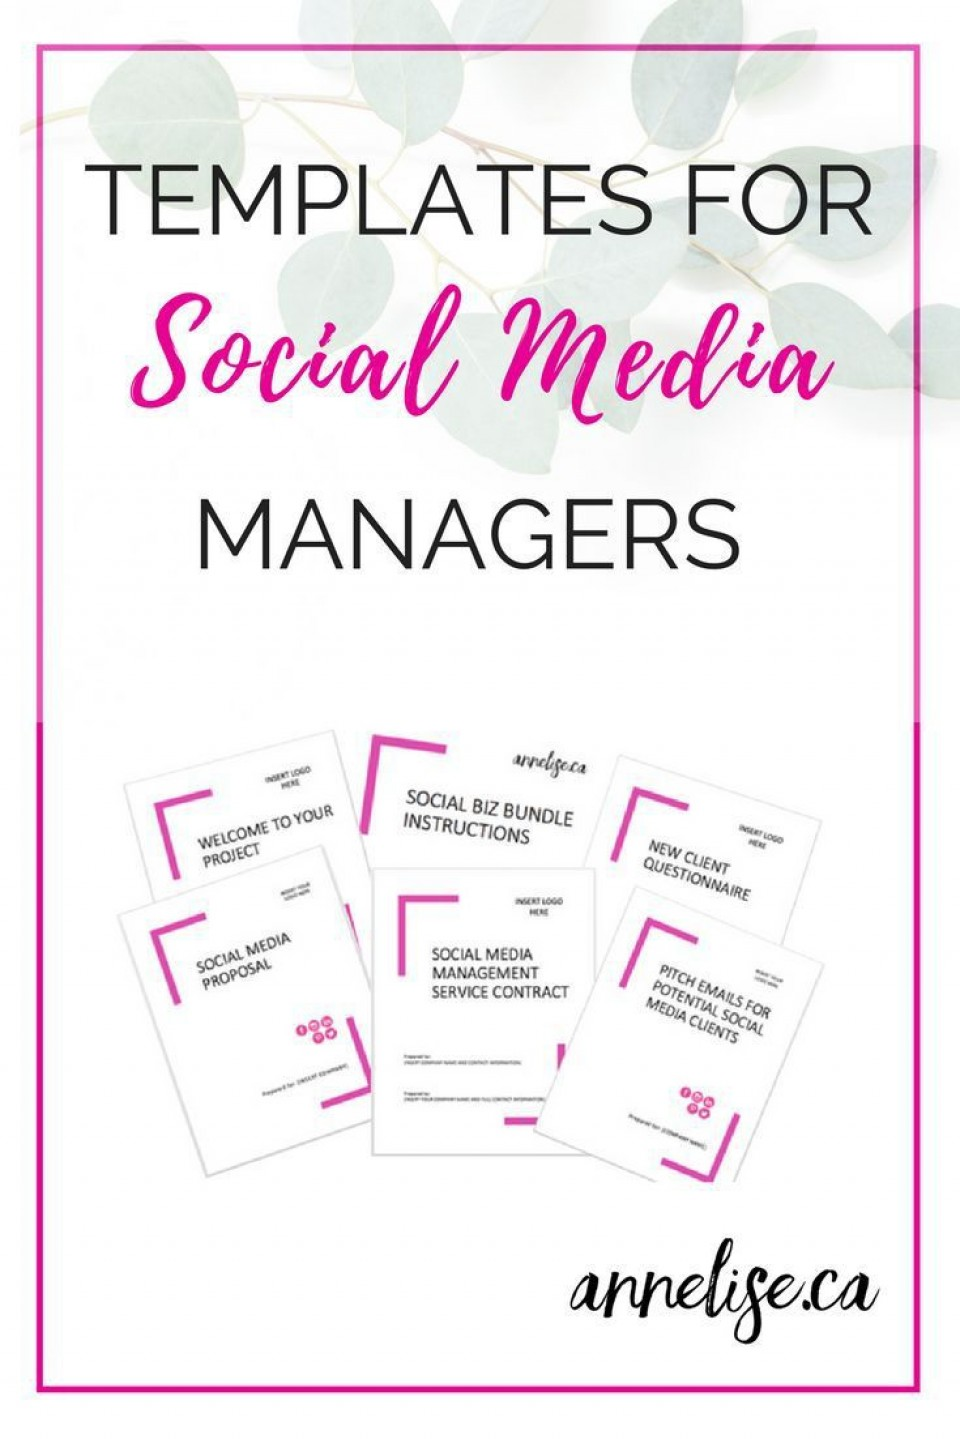 003 Awesome Social Media Proposal Template High Resolution  Plan Sample Pdf 2018960